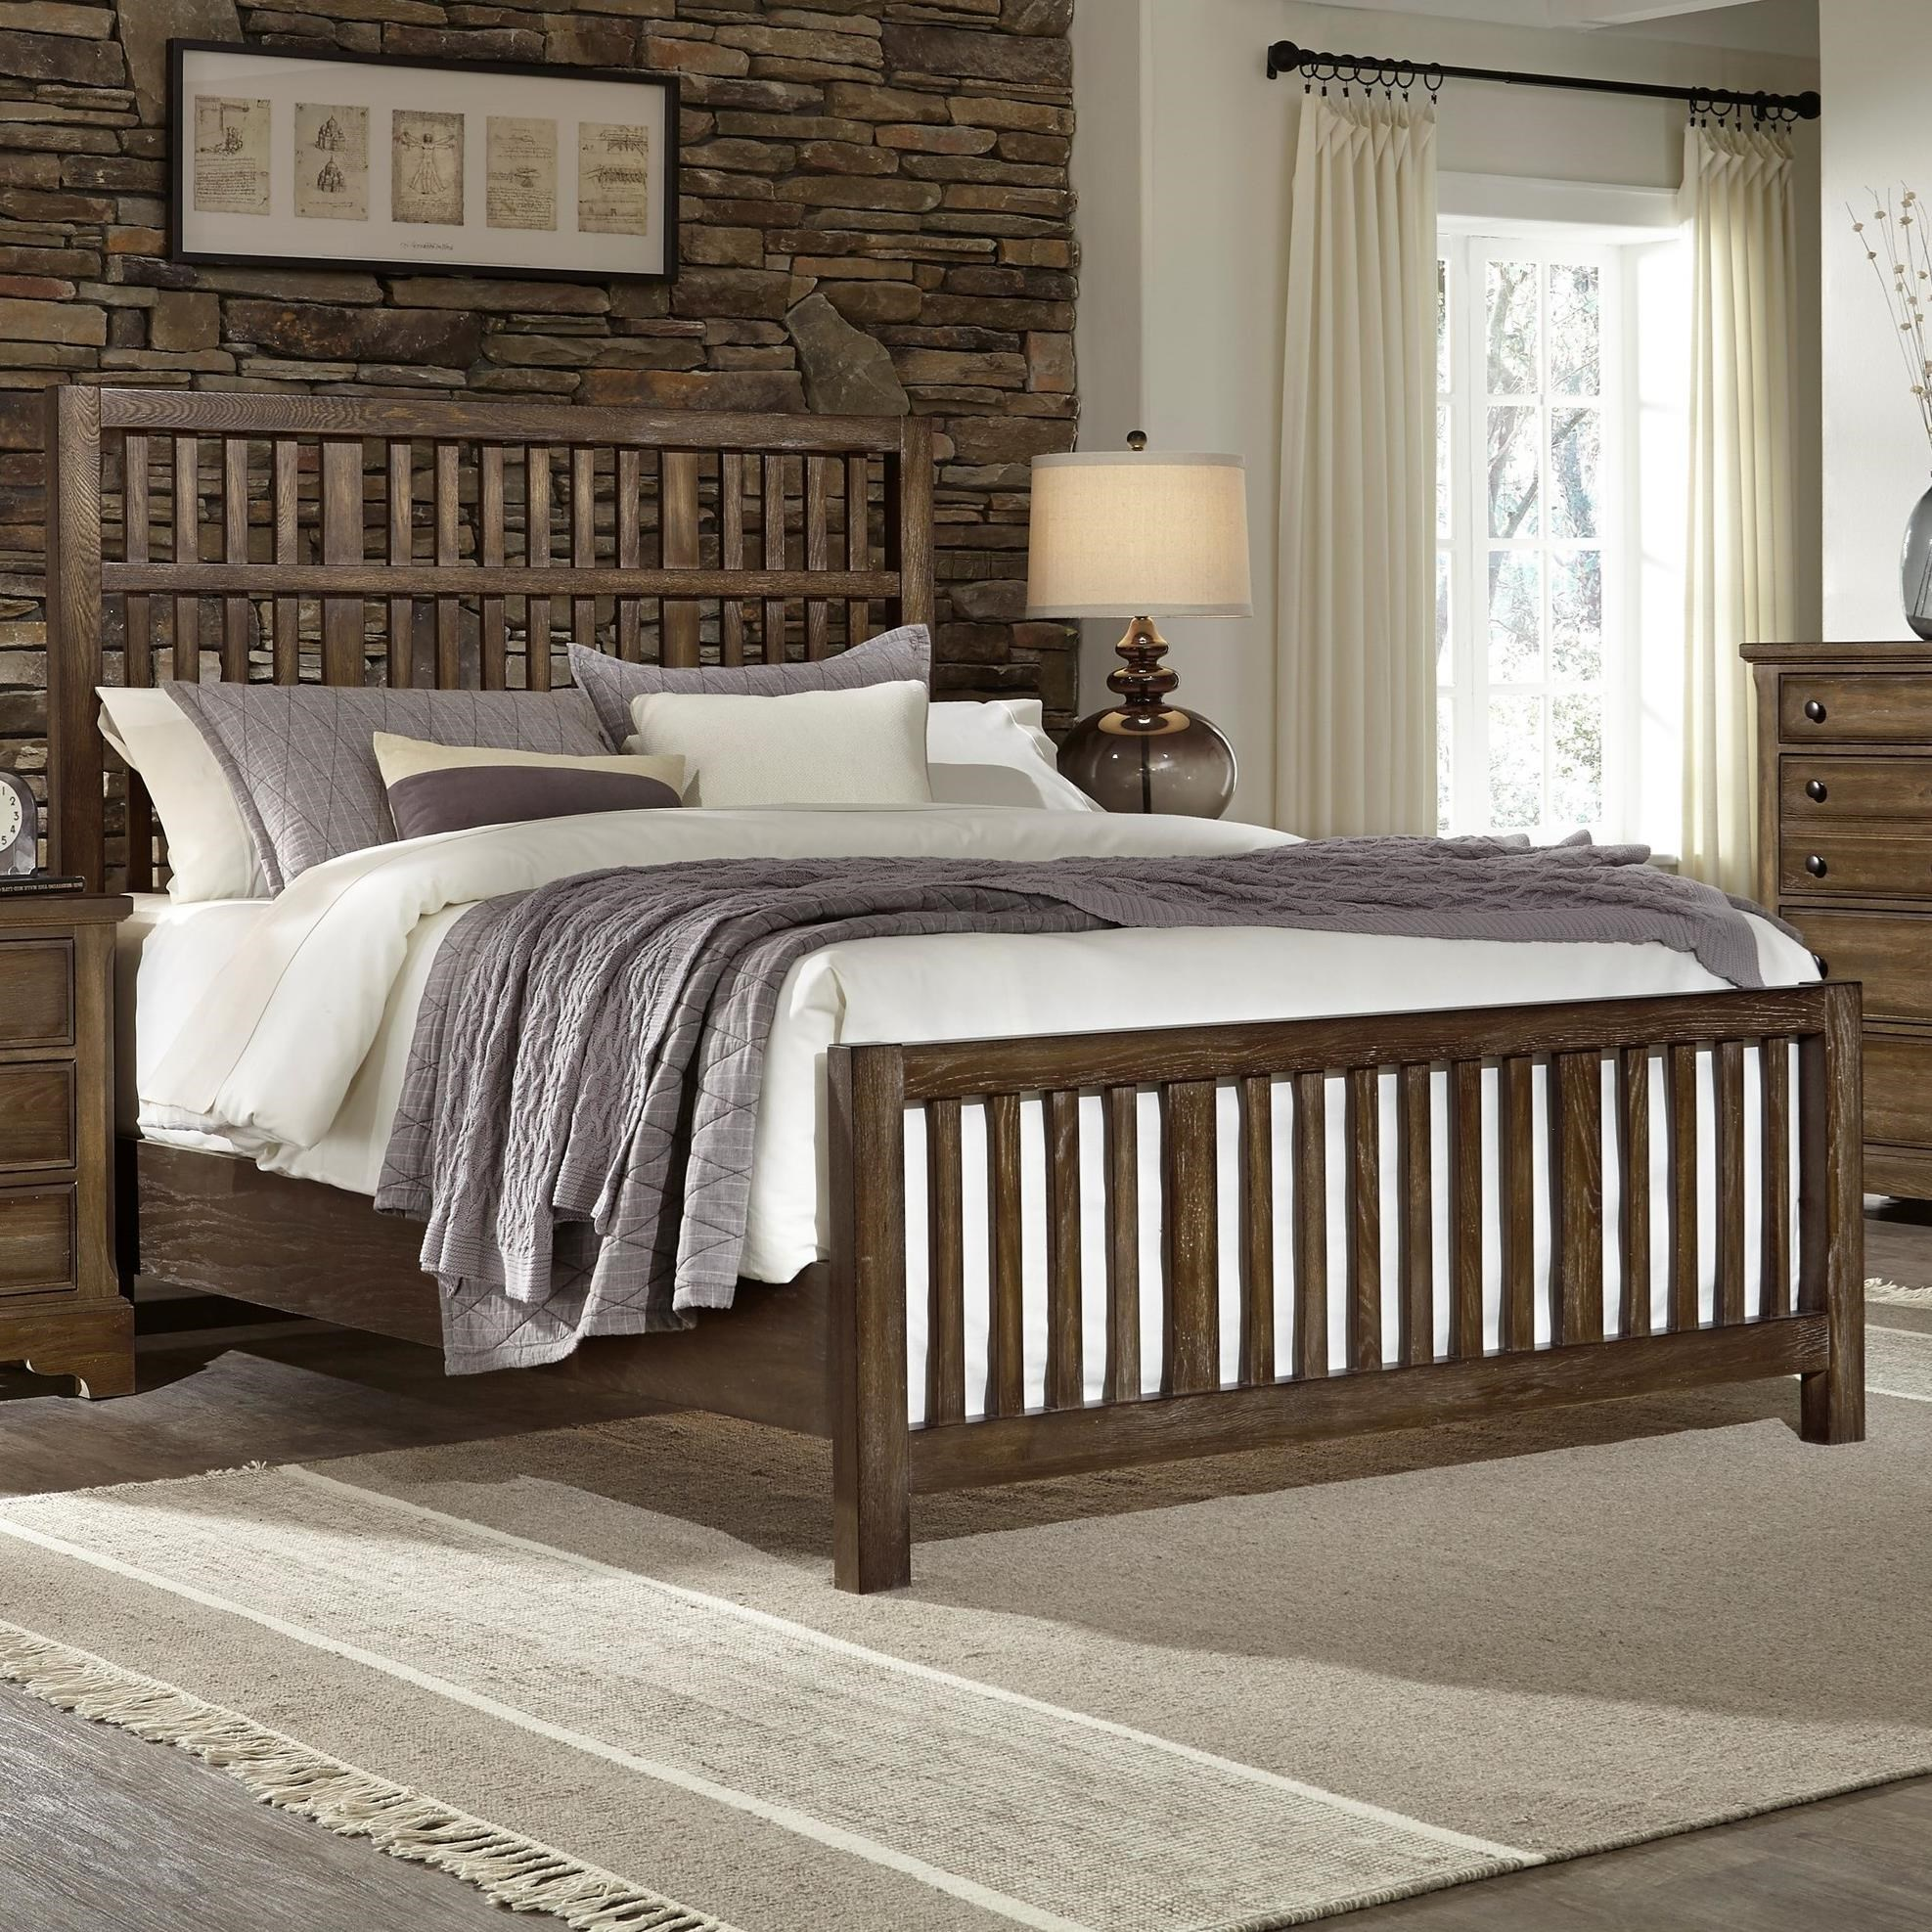 Artisan Choices Queen Craftsman Slat Bed by Artisan & Post at Zak's Home